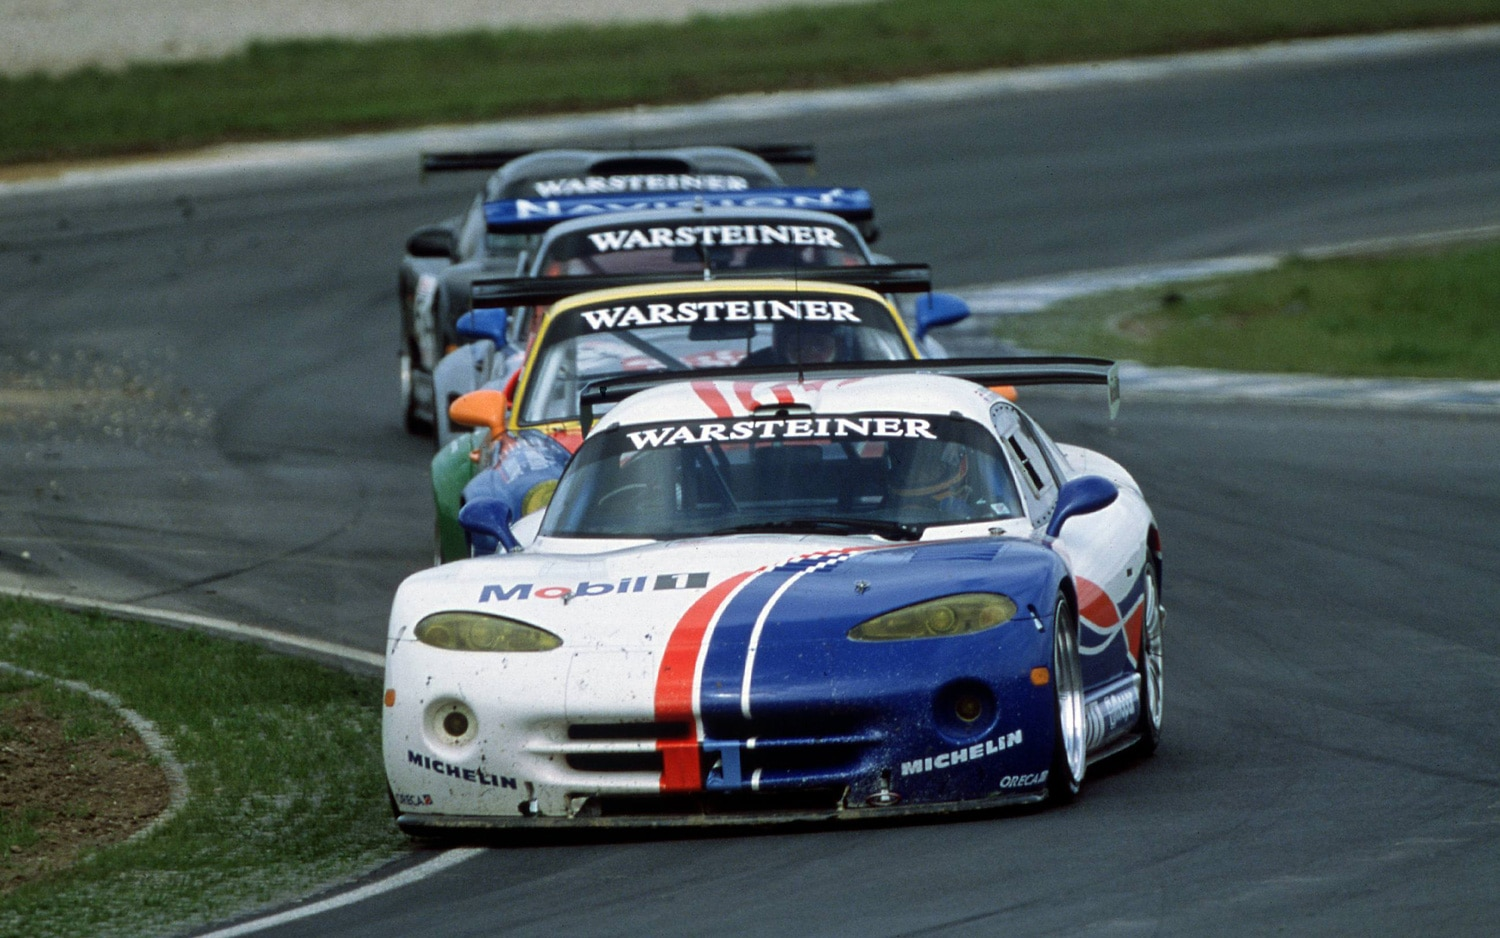 1zu43 Dodge Viper GTS R Michelin Driving Experience Nr51 Ixo 21259 additionally 5 likewise Chrysler Mulls Return To Sports Car Racing With Next Gen Viper 57427 also Wallpapers also Dodge Viper Acr Prepares Nurburgring Lap Record Assault. on viper gtsr